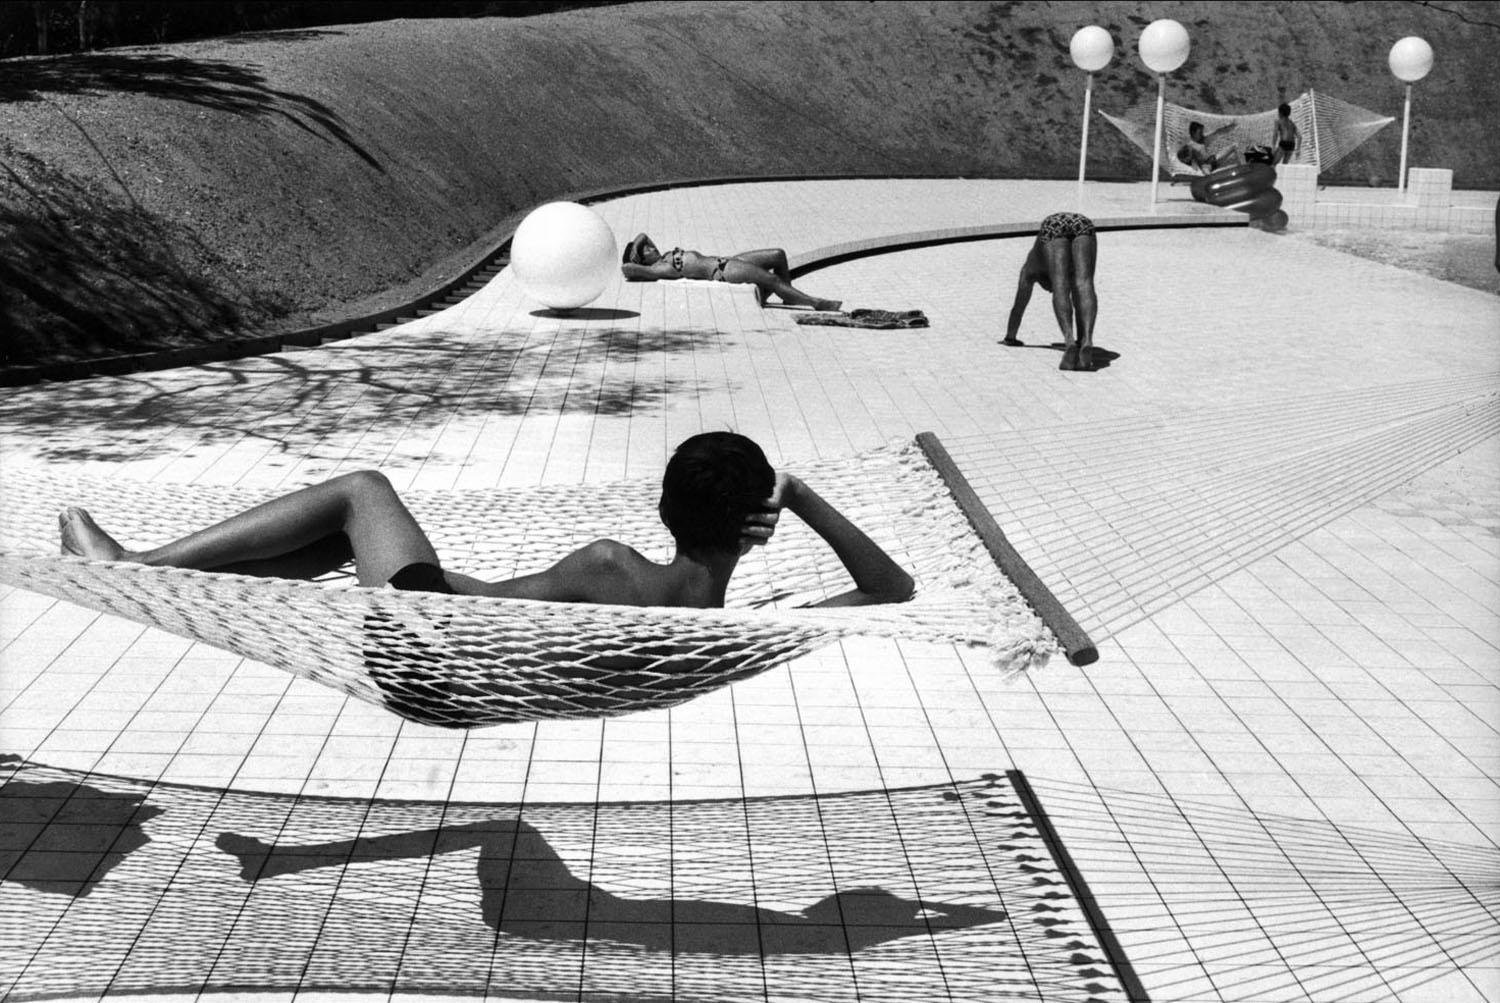 Pool designed by Alain Capeilleres in Le Brusc, France, 1976.